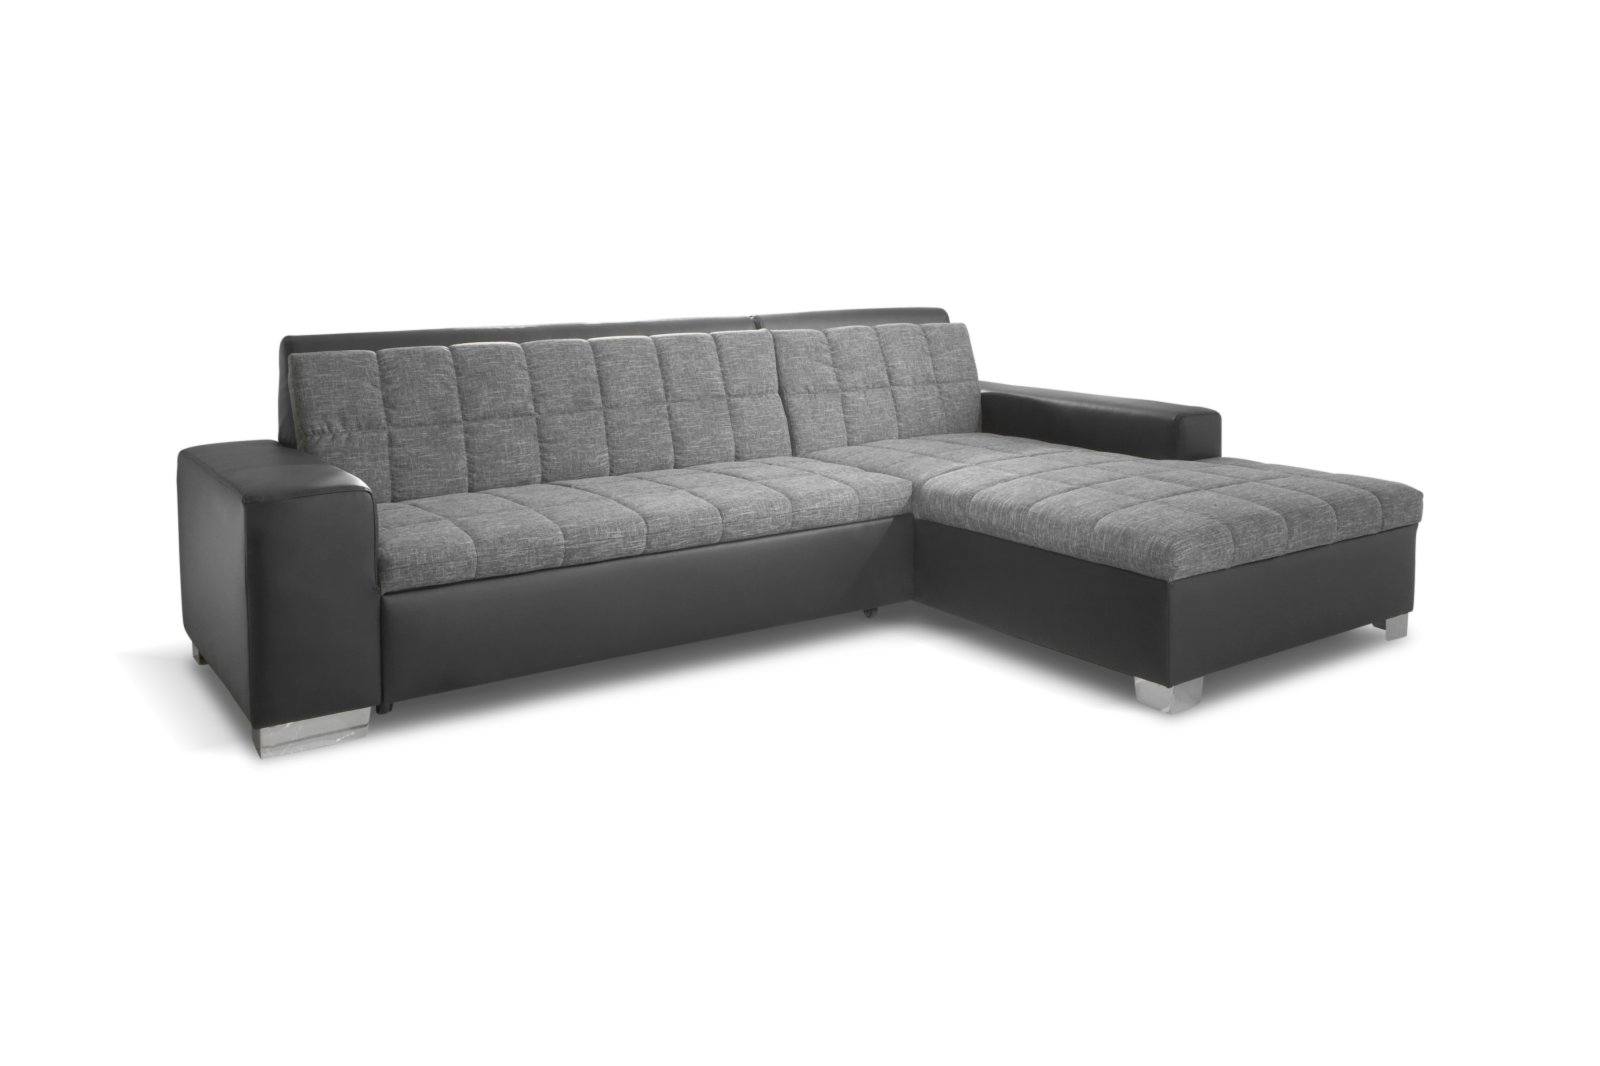 sofaecke. Black Bedroom Furniture Sets. Home Design Ideas